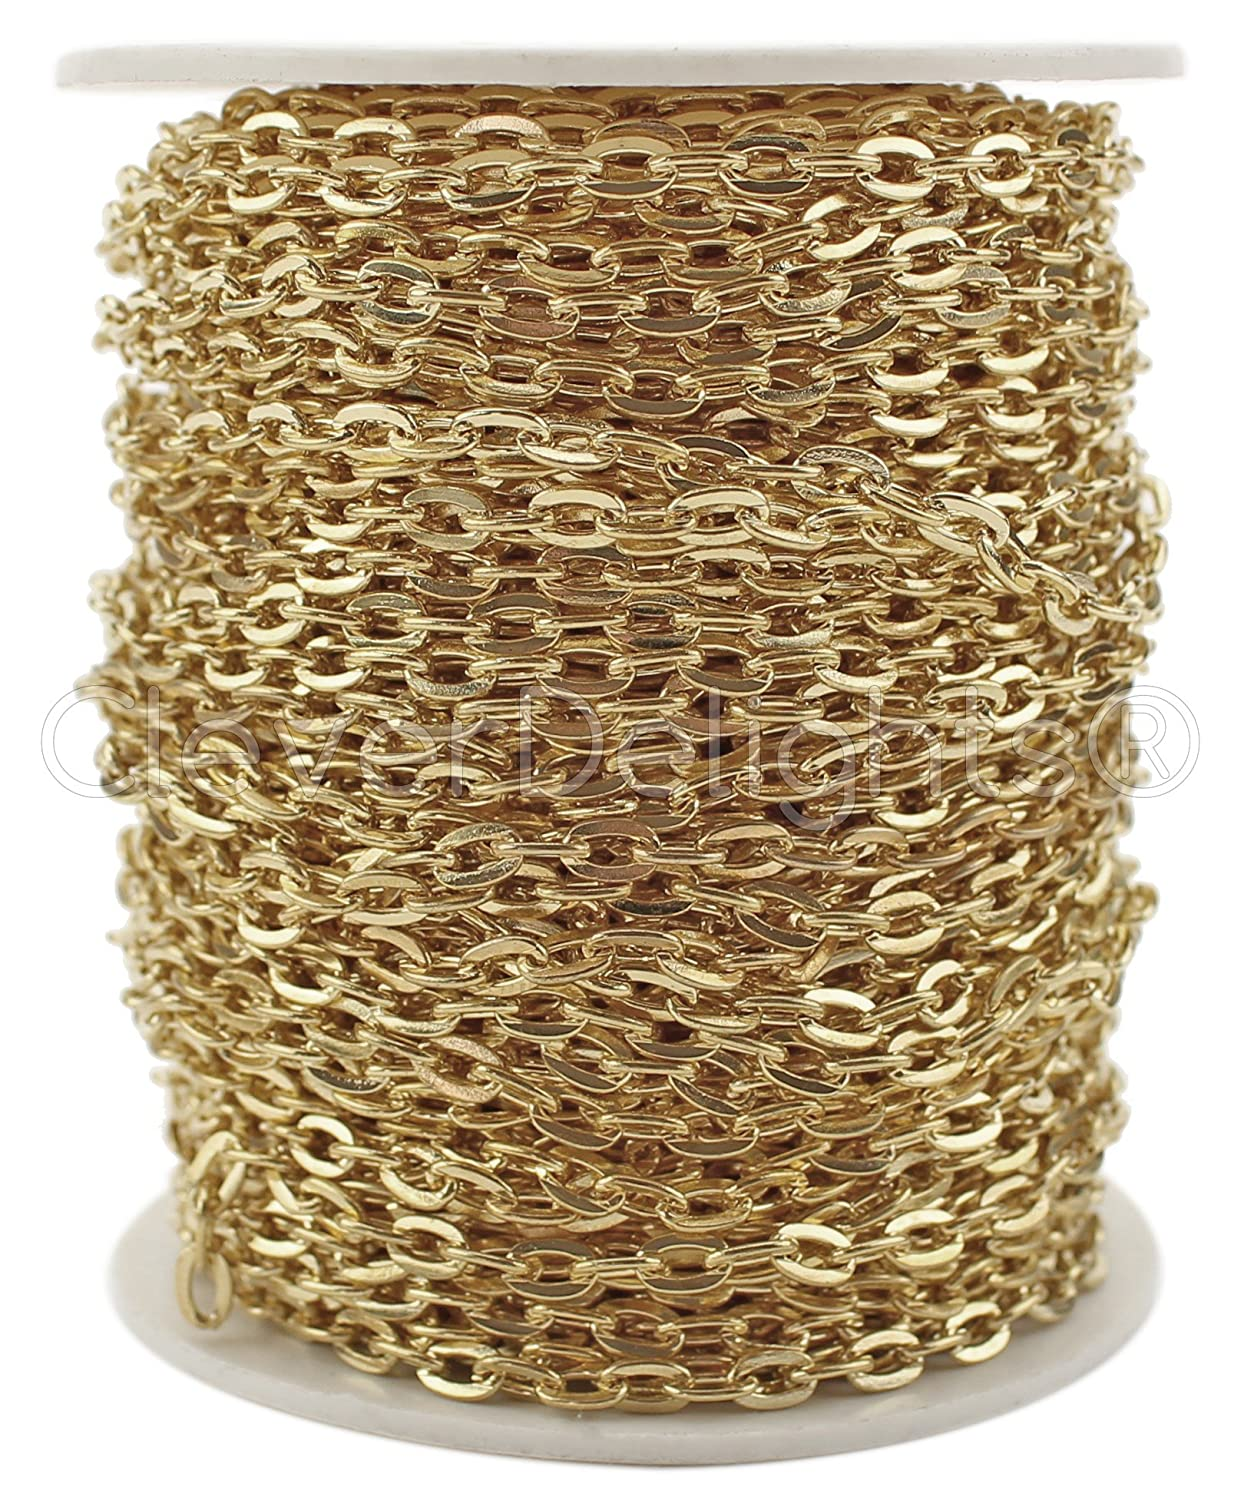 CleverDelights Cable Chain Spool - 100 Feet - Champagne Gold Color - 4x6mm Link - Rolo Chain Bulk Roll by CleverDelights   B01BXCHFKG